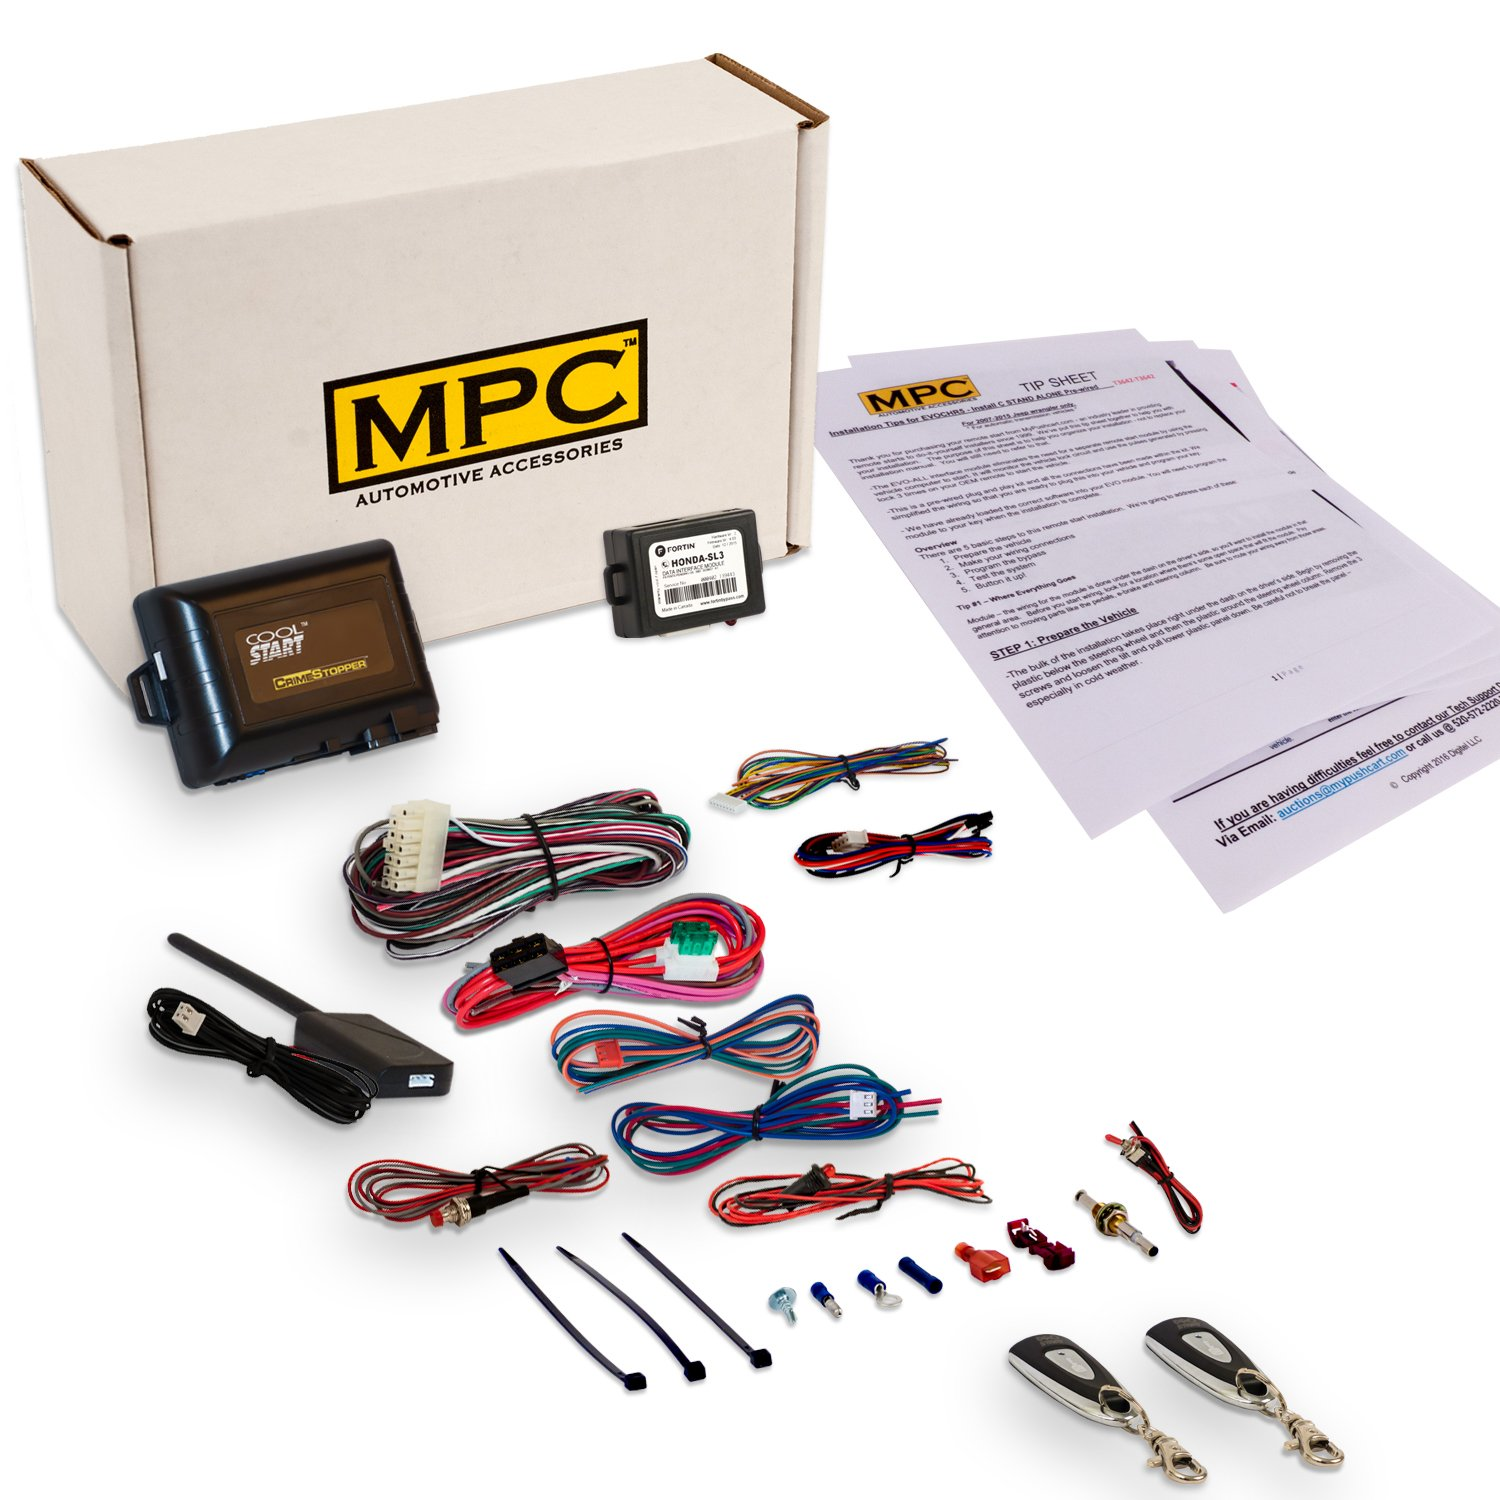 Complete 1 Button Remote Start Kit For Honda And Acura Car Starter Civic Also Viper Wiring Diagram Automotive